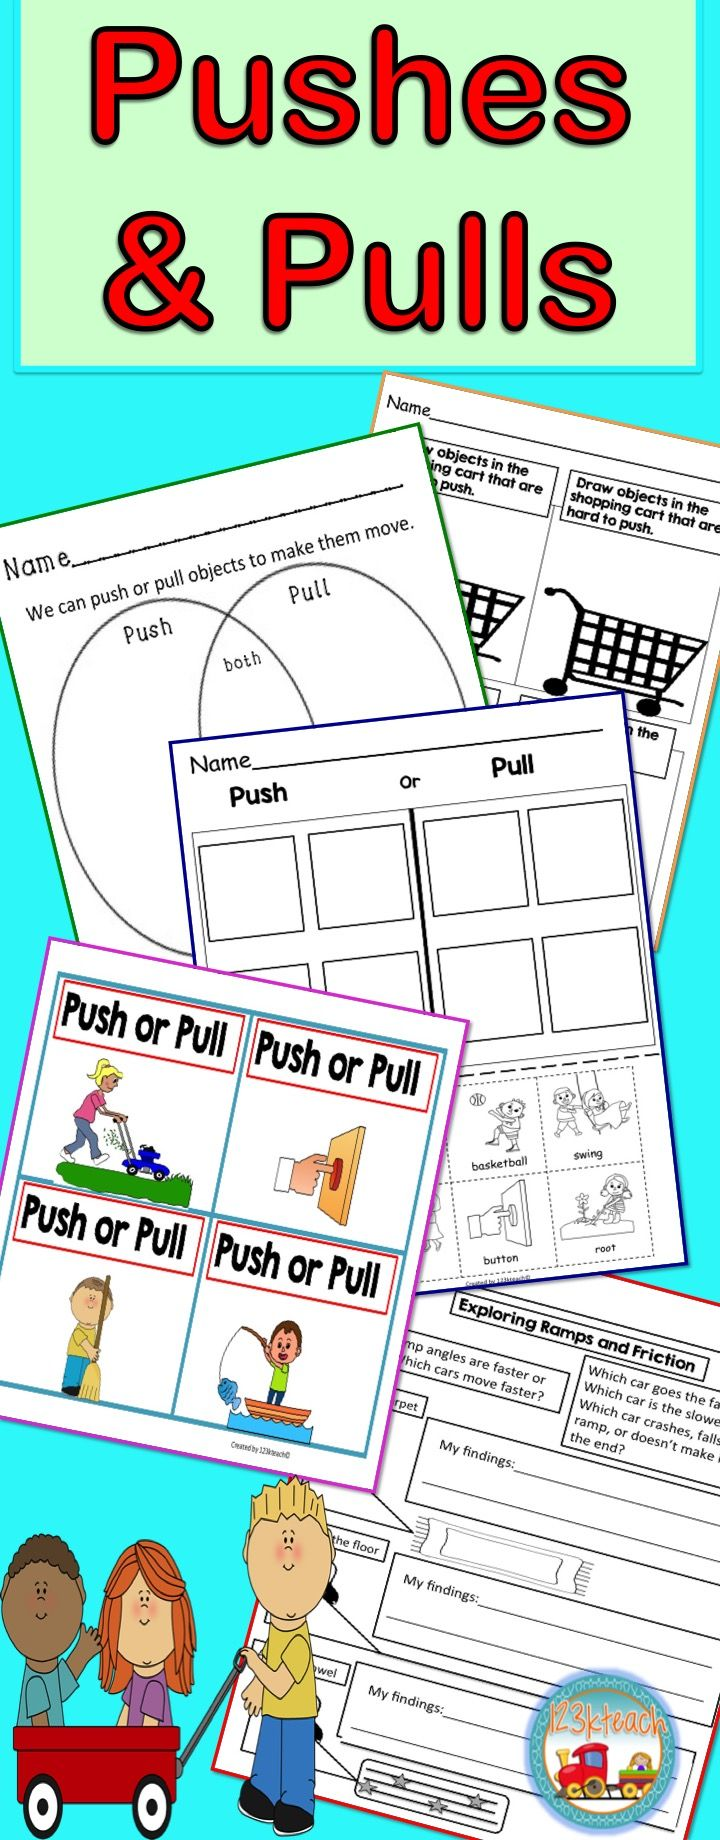 Pin On Literacy Math Science Ideas For Primary Grades [ 1840 x 720 Pixel ]